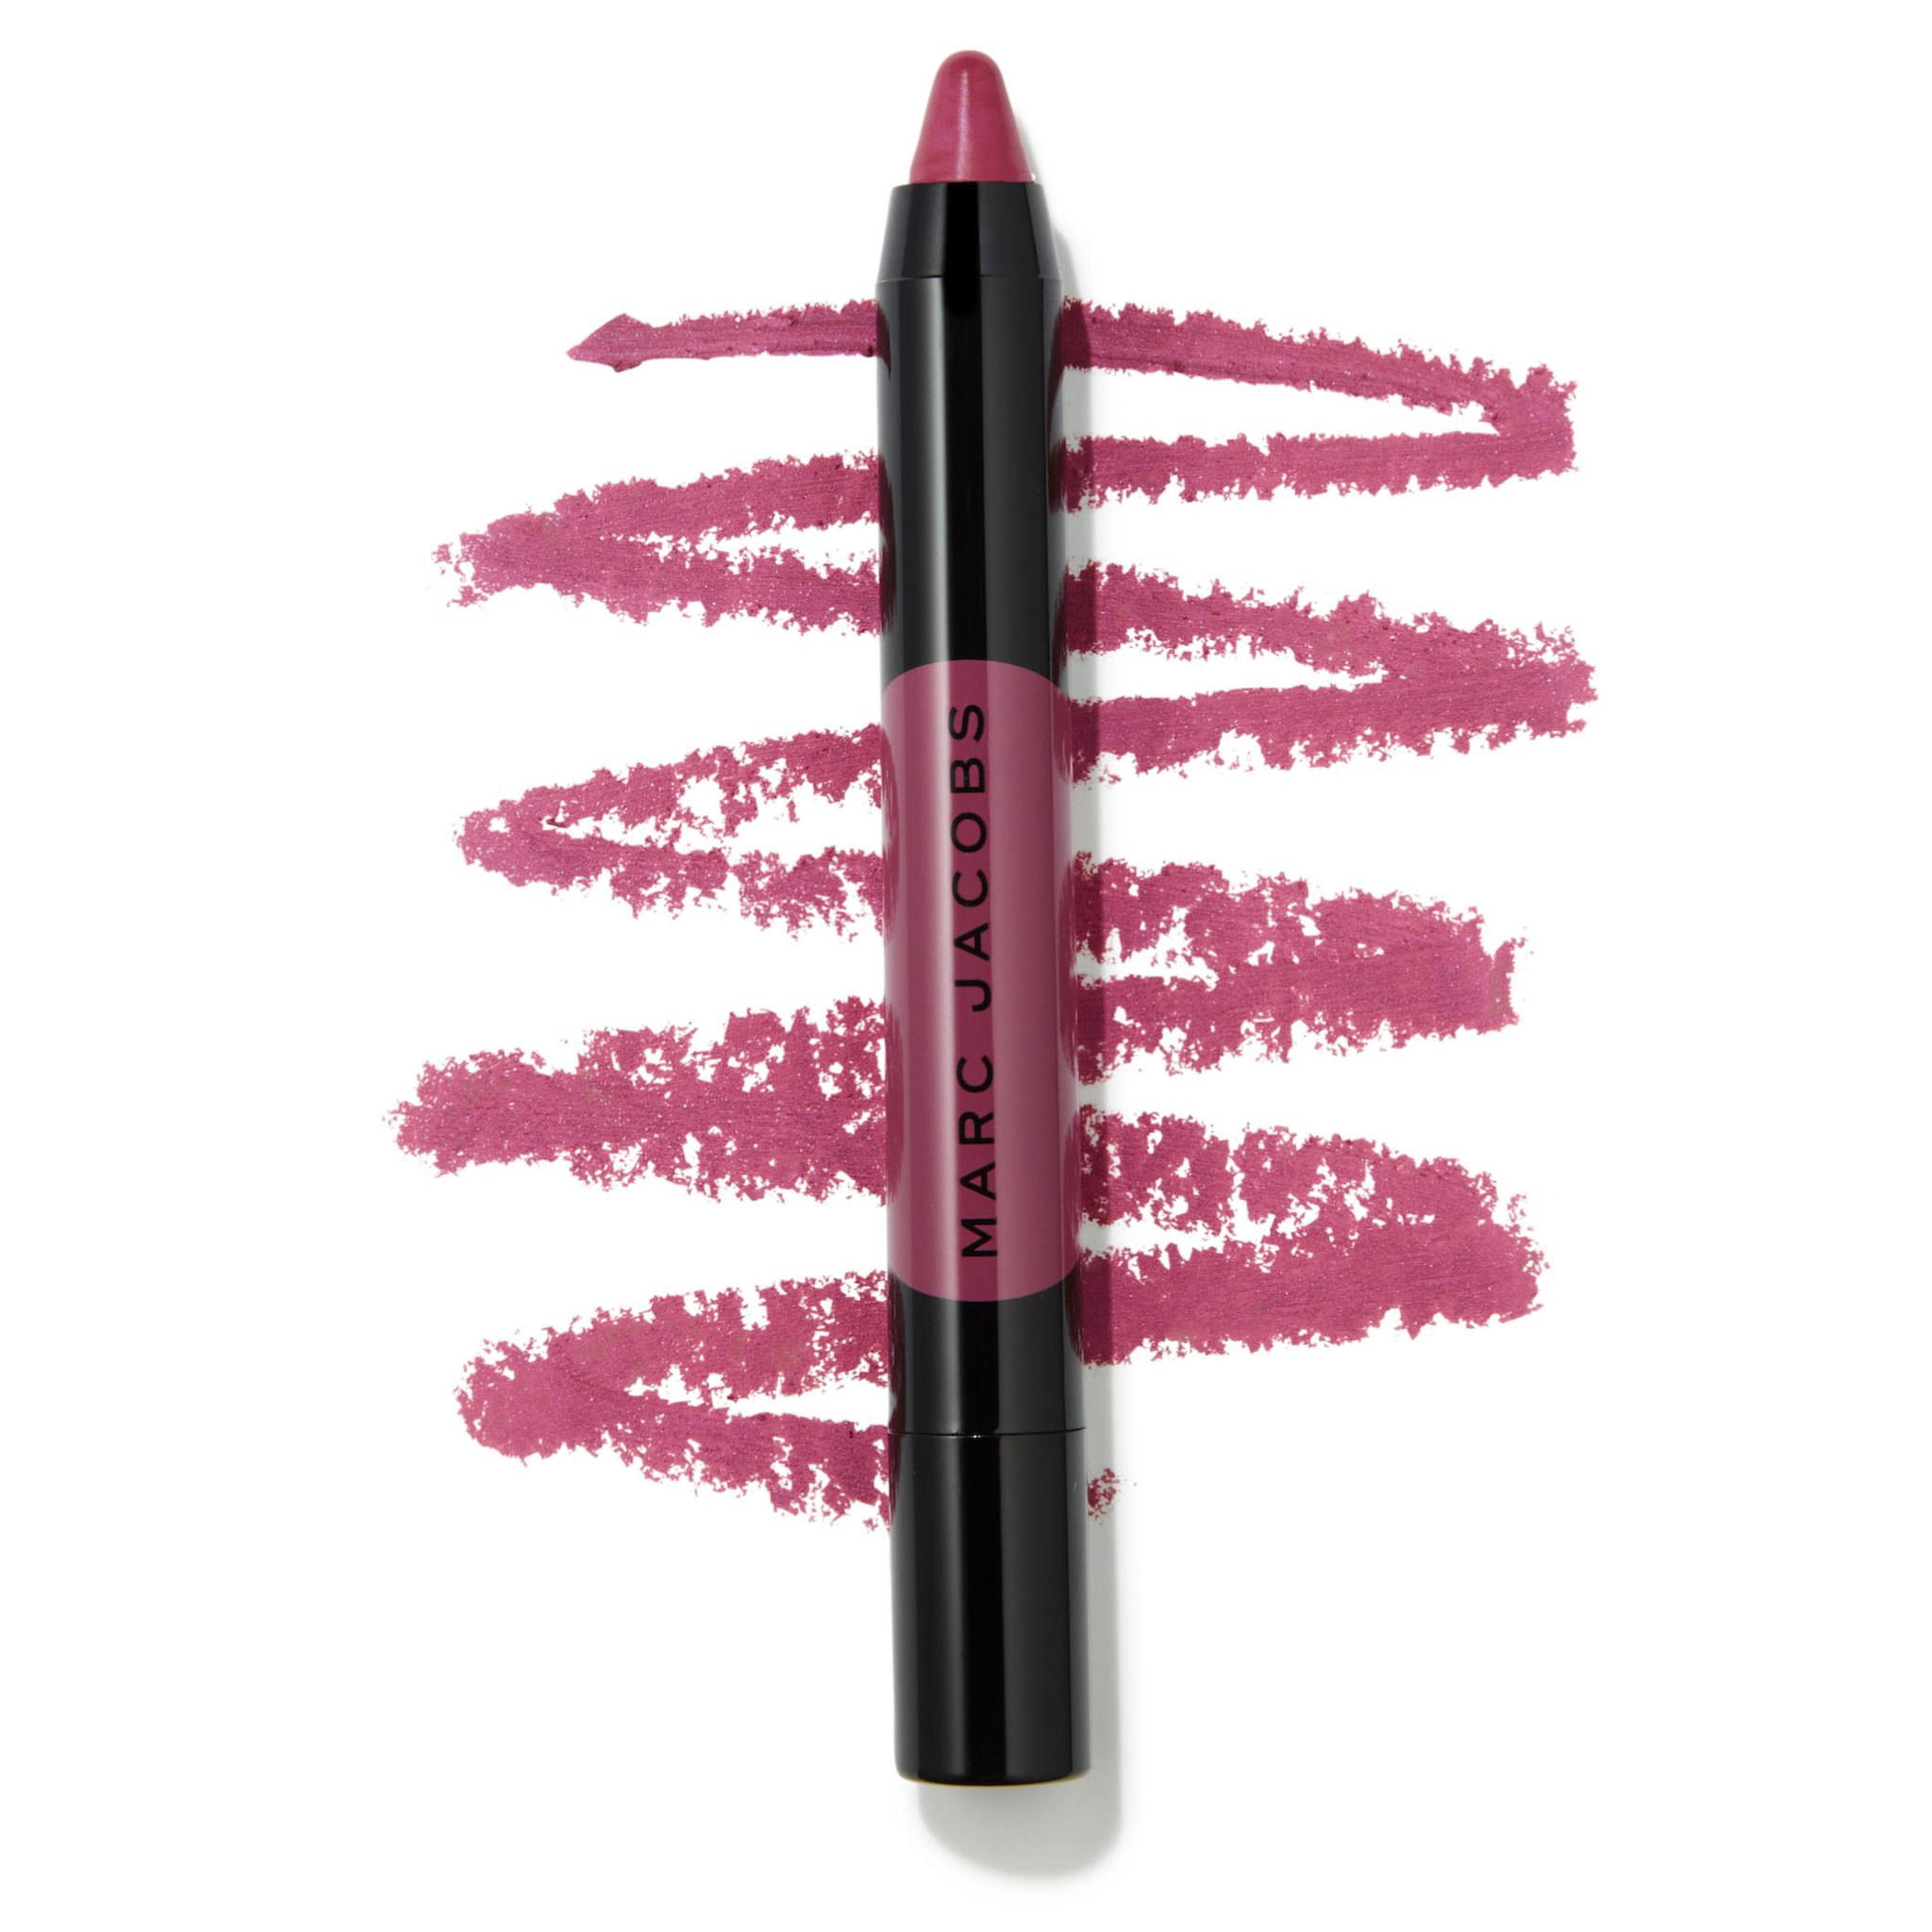 Marc Jacobs Beauty Le Marc Liquid Lip Crayon - Pink Straight Swatch - AED 125